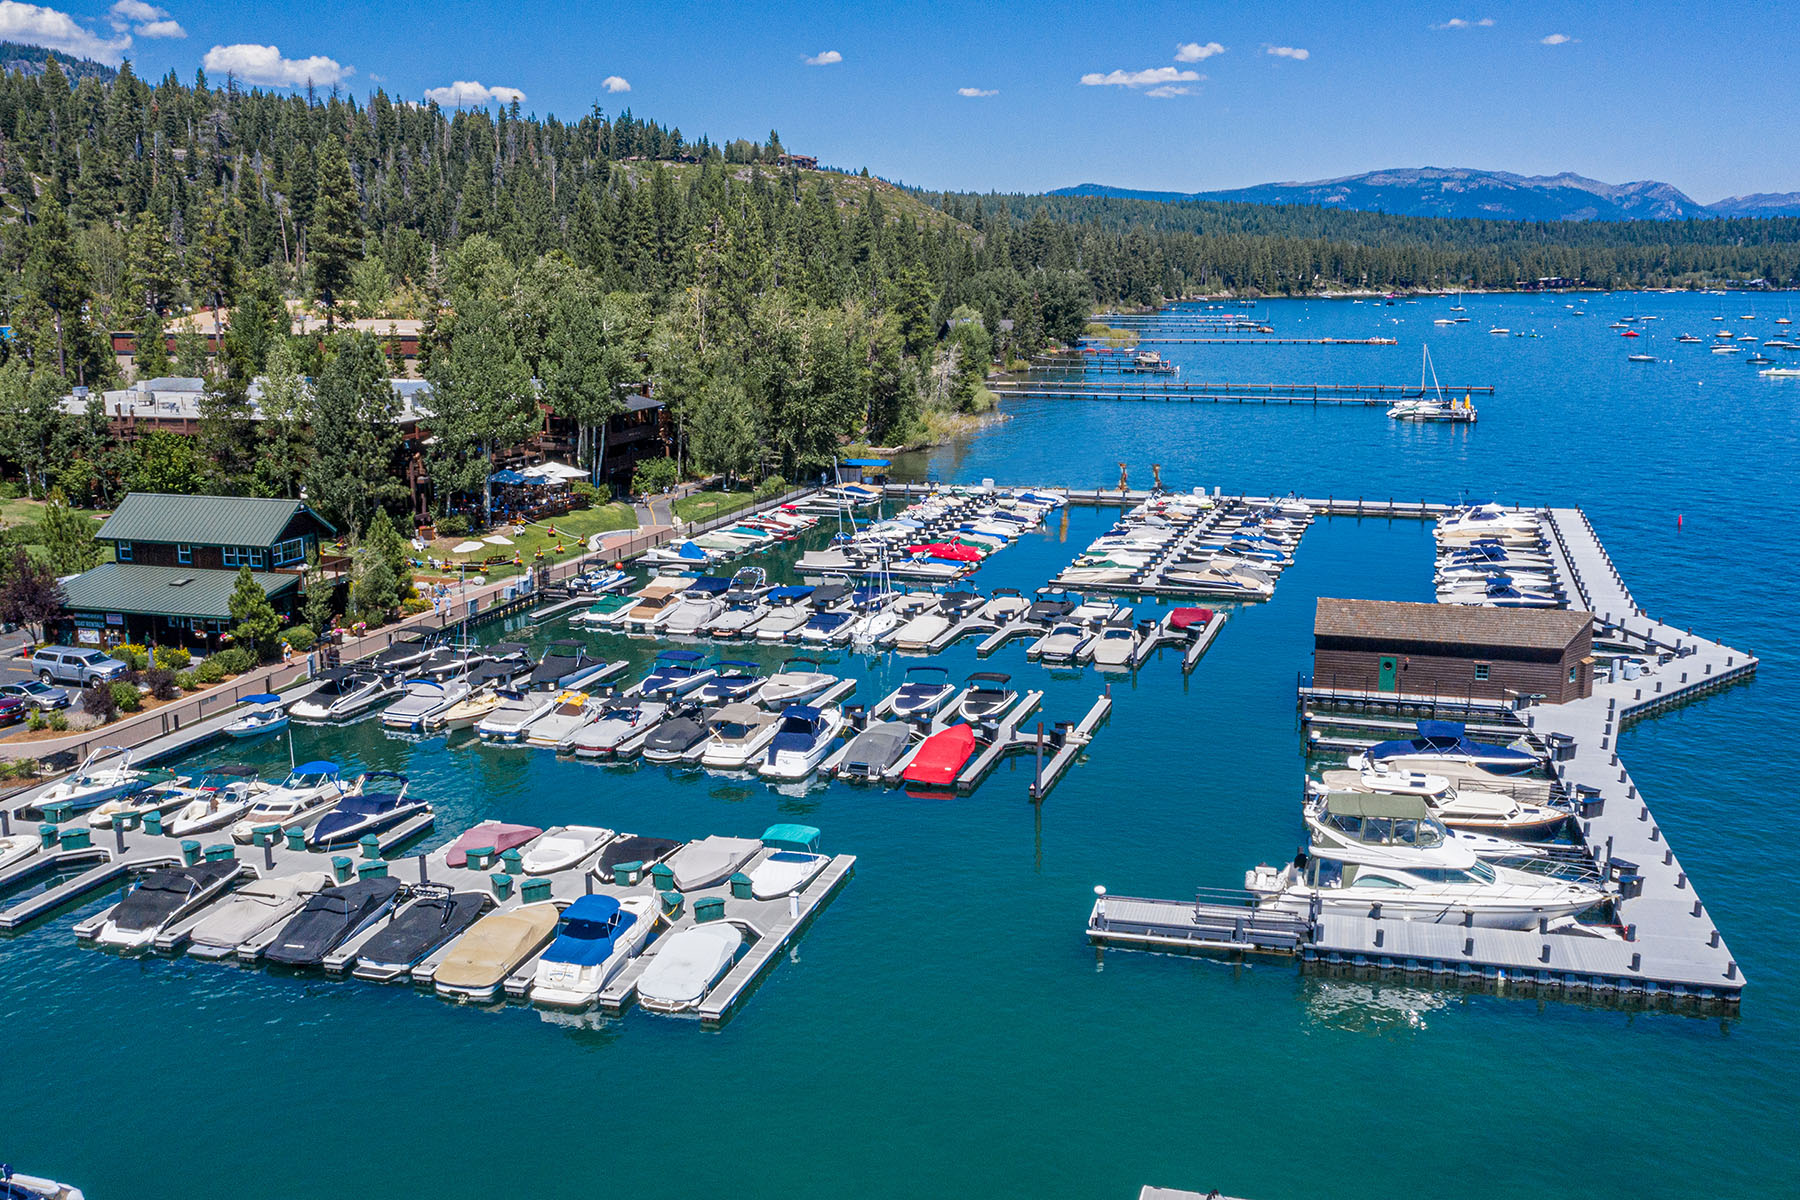 in 700 N. Lake Blvd. #F-25, Tahoe City, California ,96145